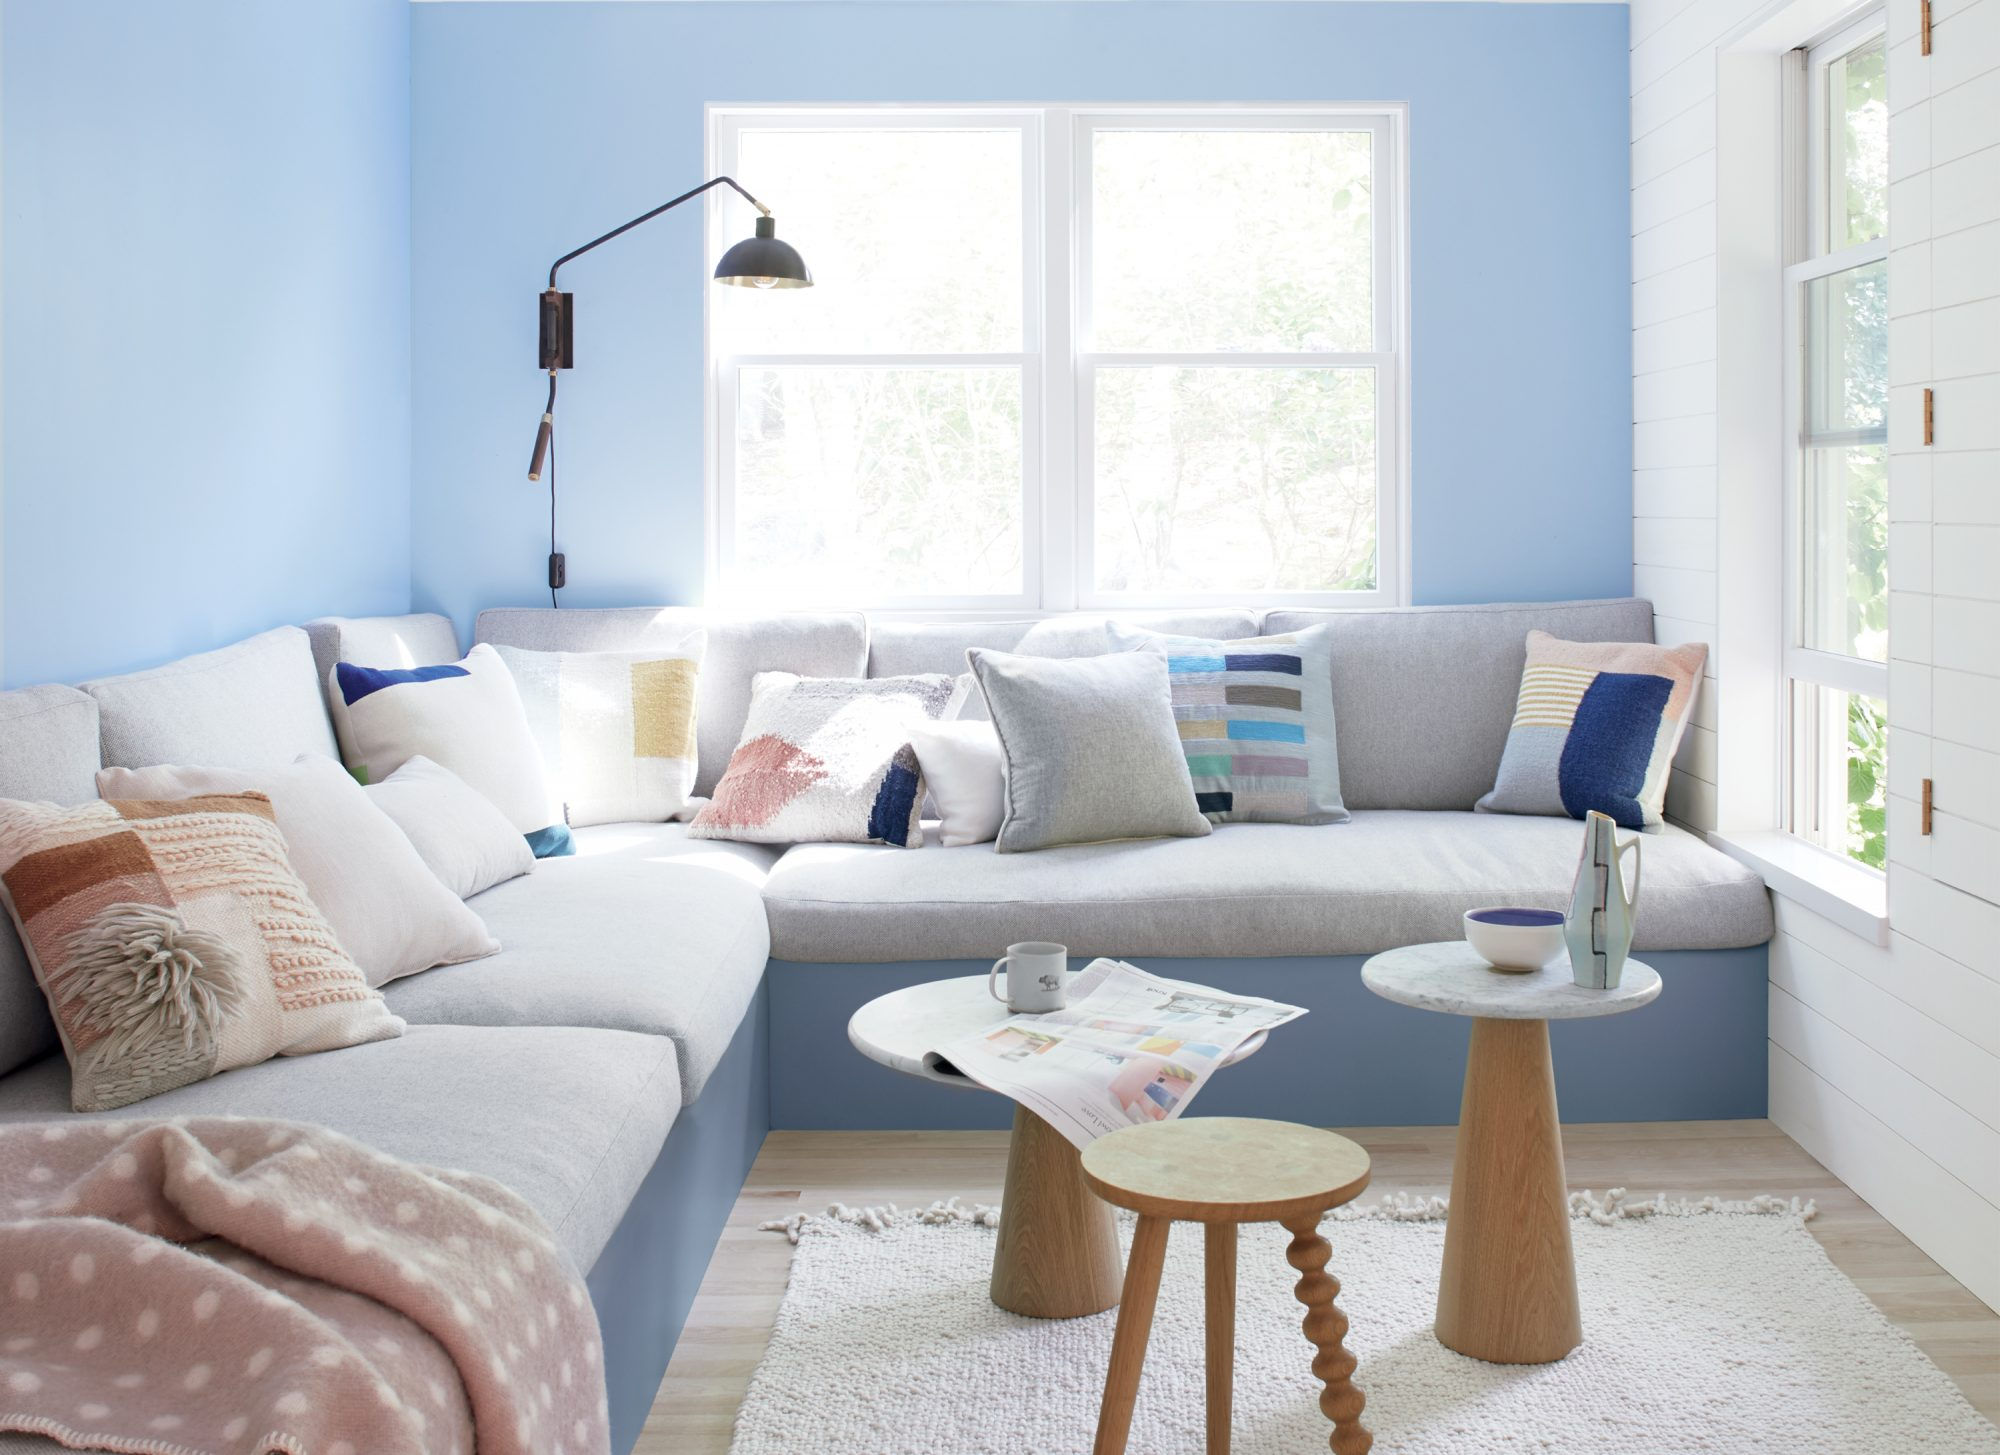 living room with light blue painted walls